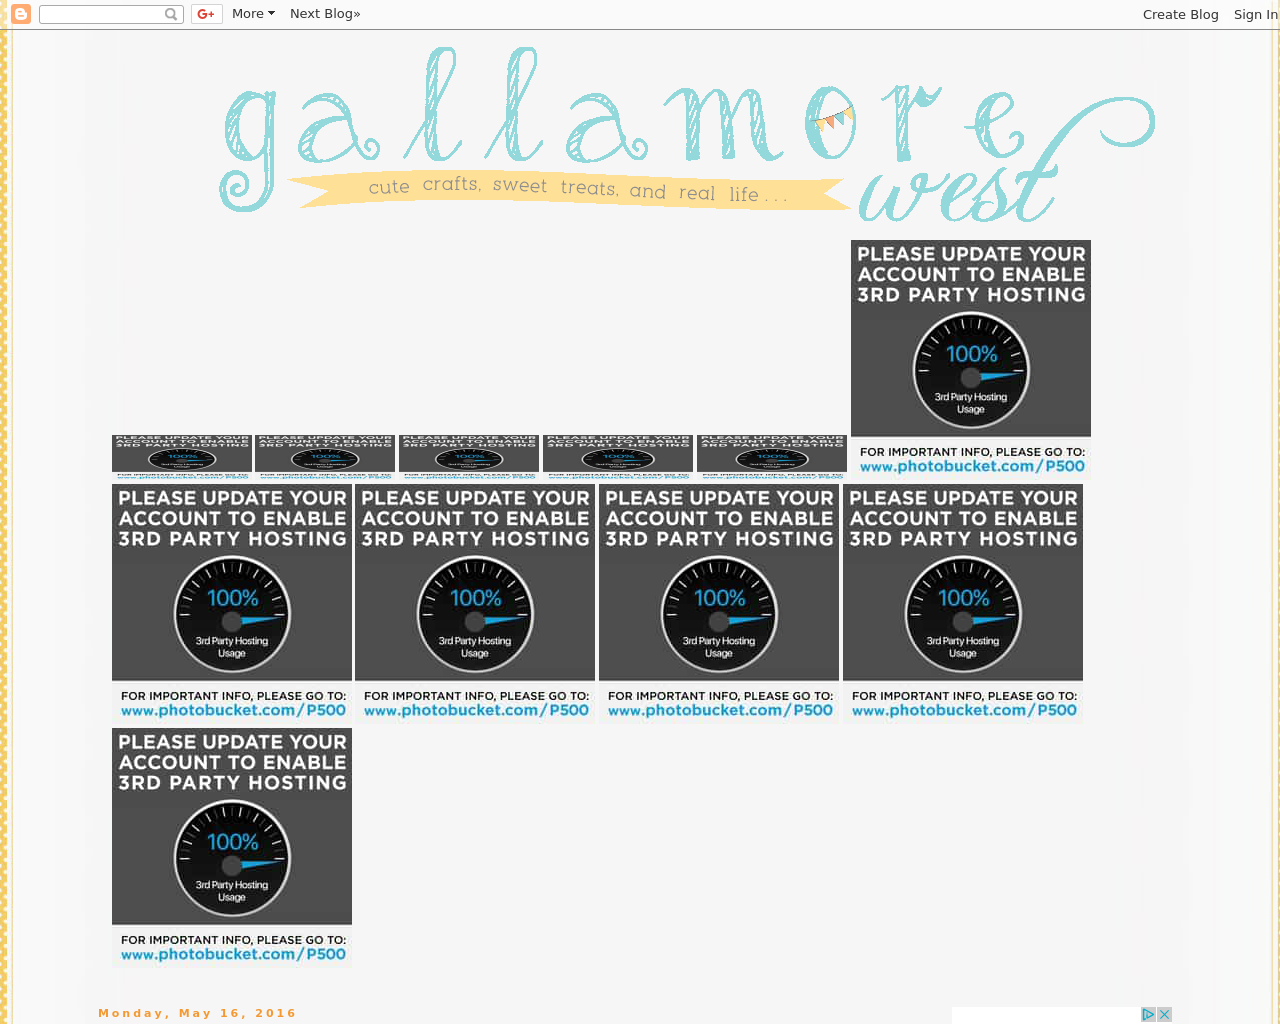 gallamore-west-Advertising-Reviews-Pricing